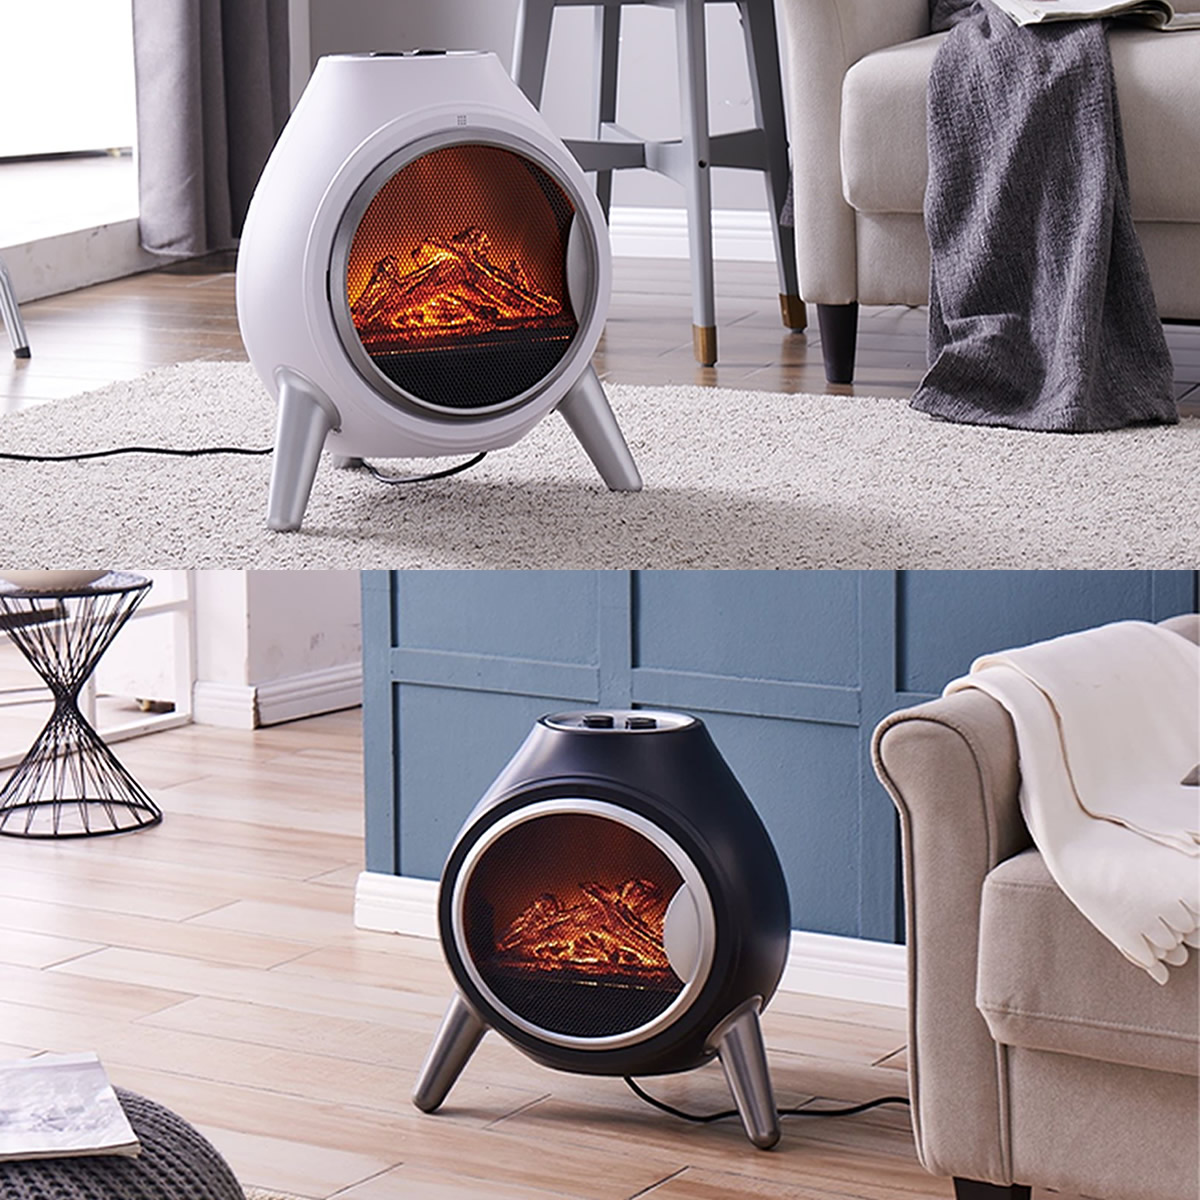 Fine Details About 1 8Kw Log Fire Electric Heater Oval Flame Effect Fireplace Log Burner Stove Led Beutiful Home Inspiration Ommitmahrainfo